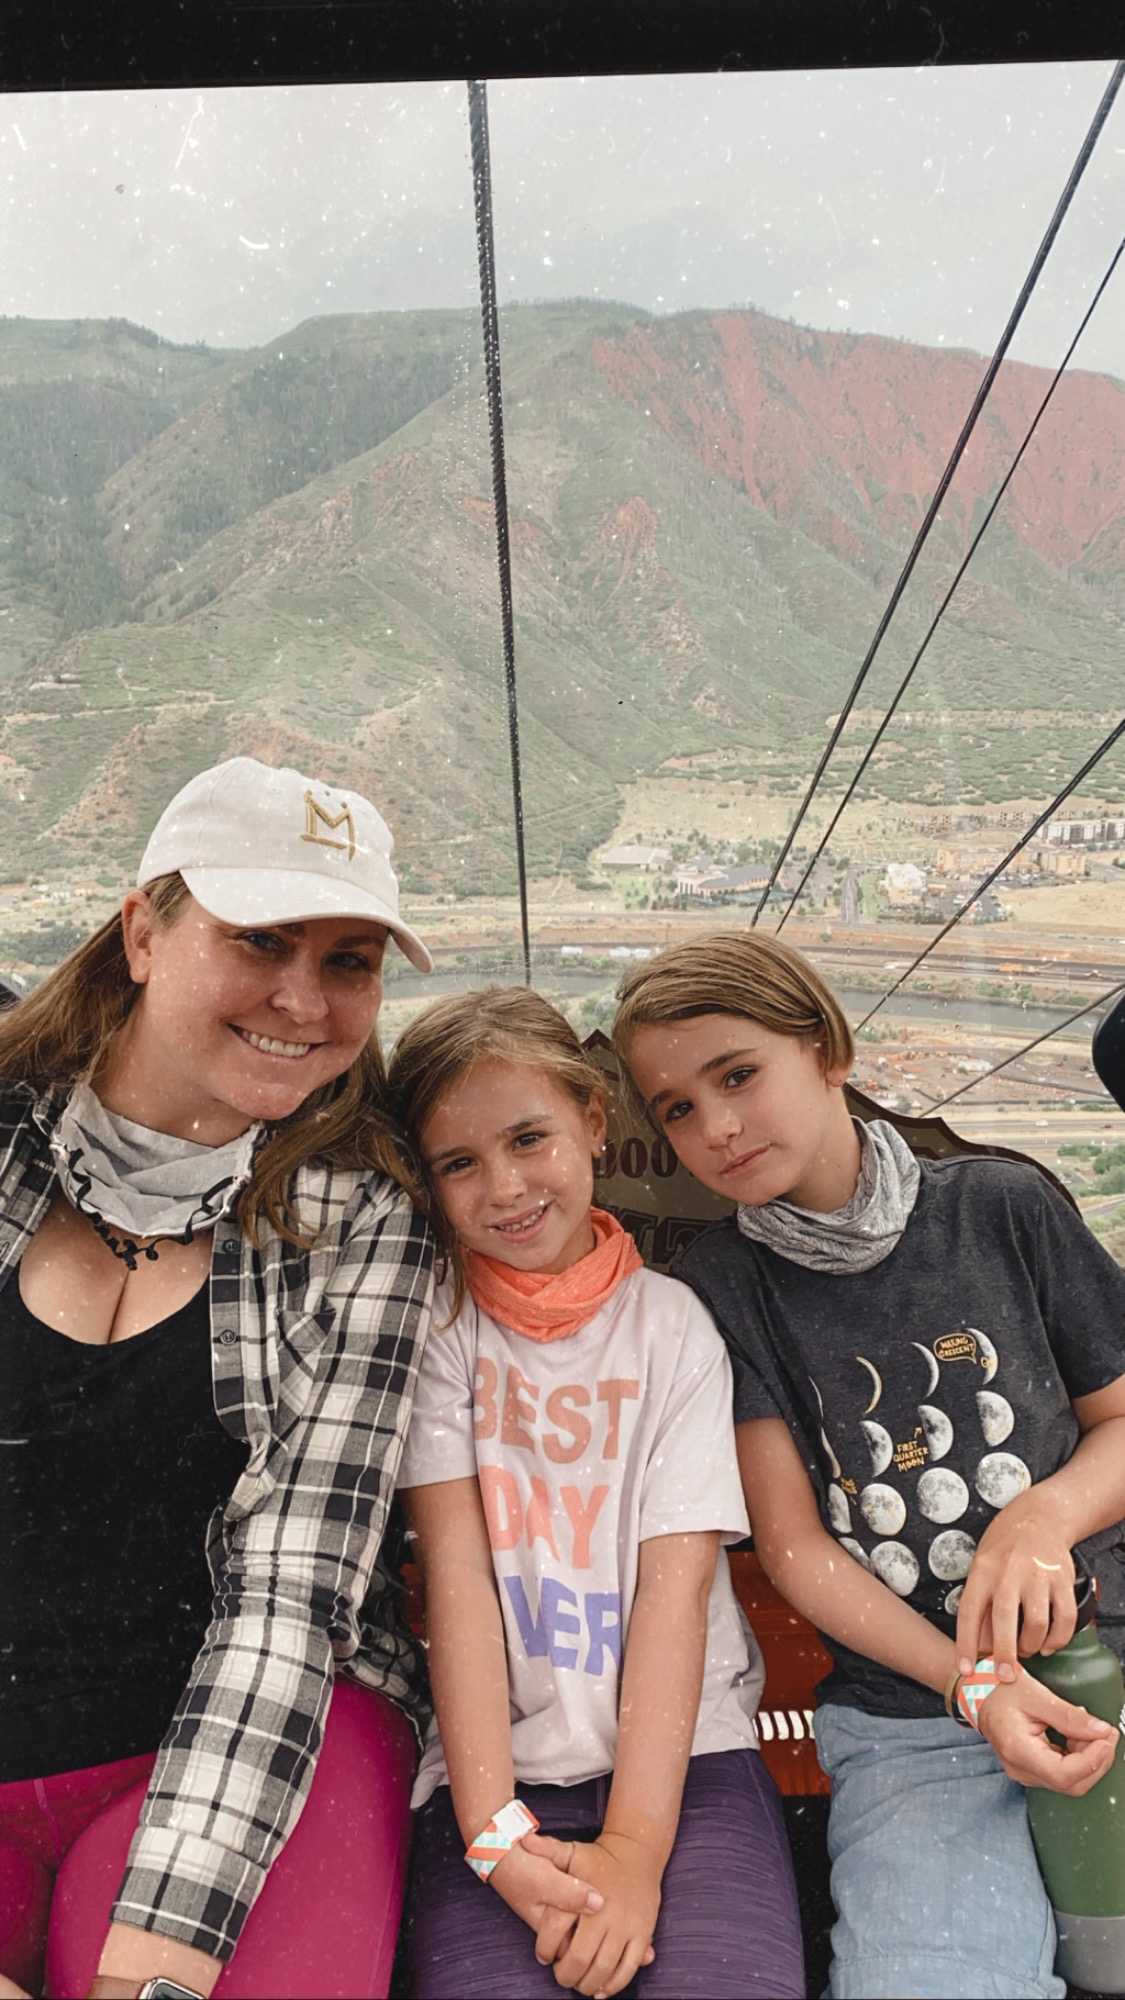 taking the gondola up to the Glenwood Caverns. #colorado #familytravel #mountainfun